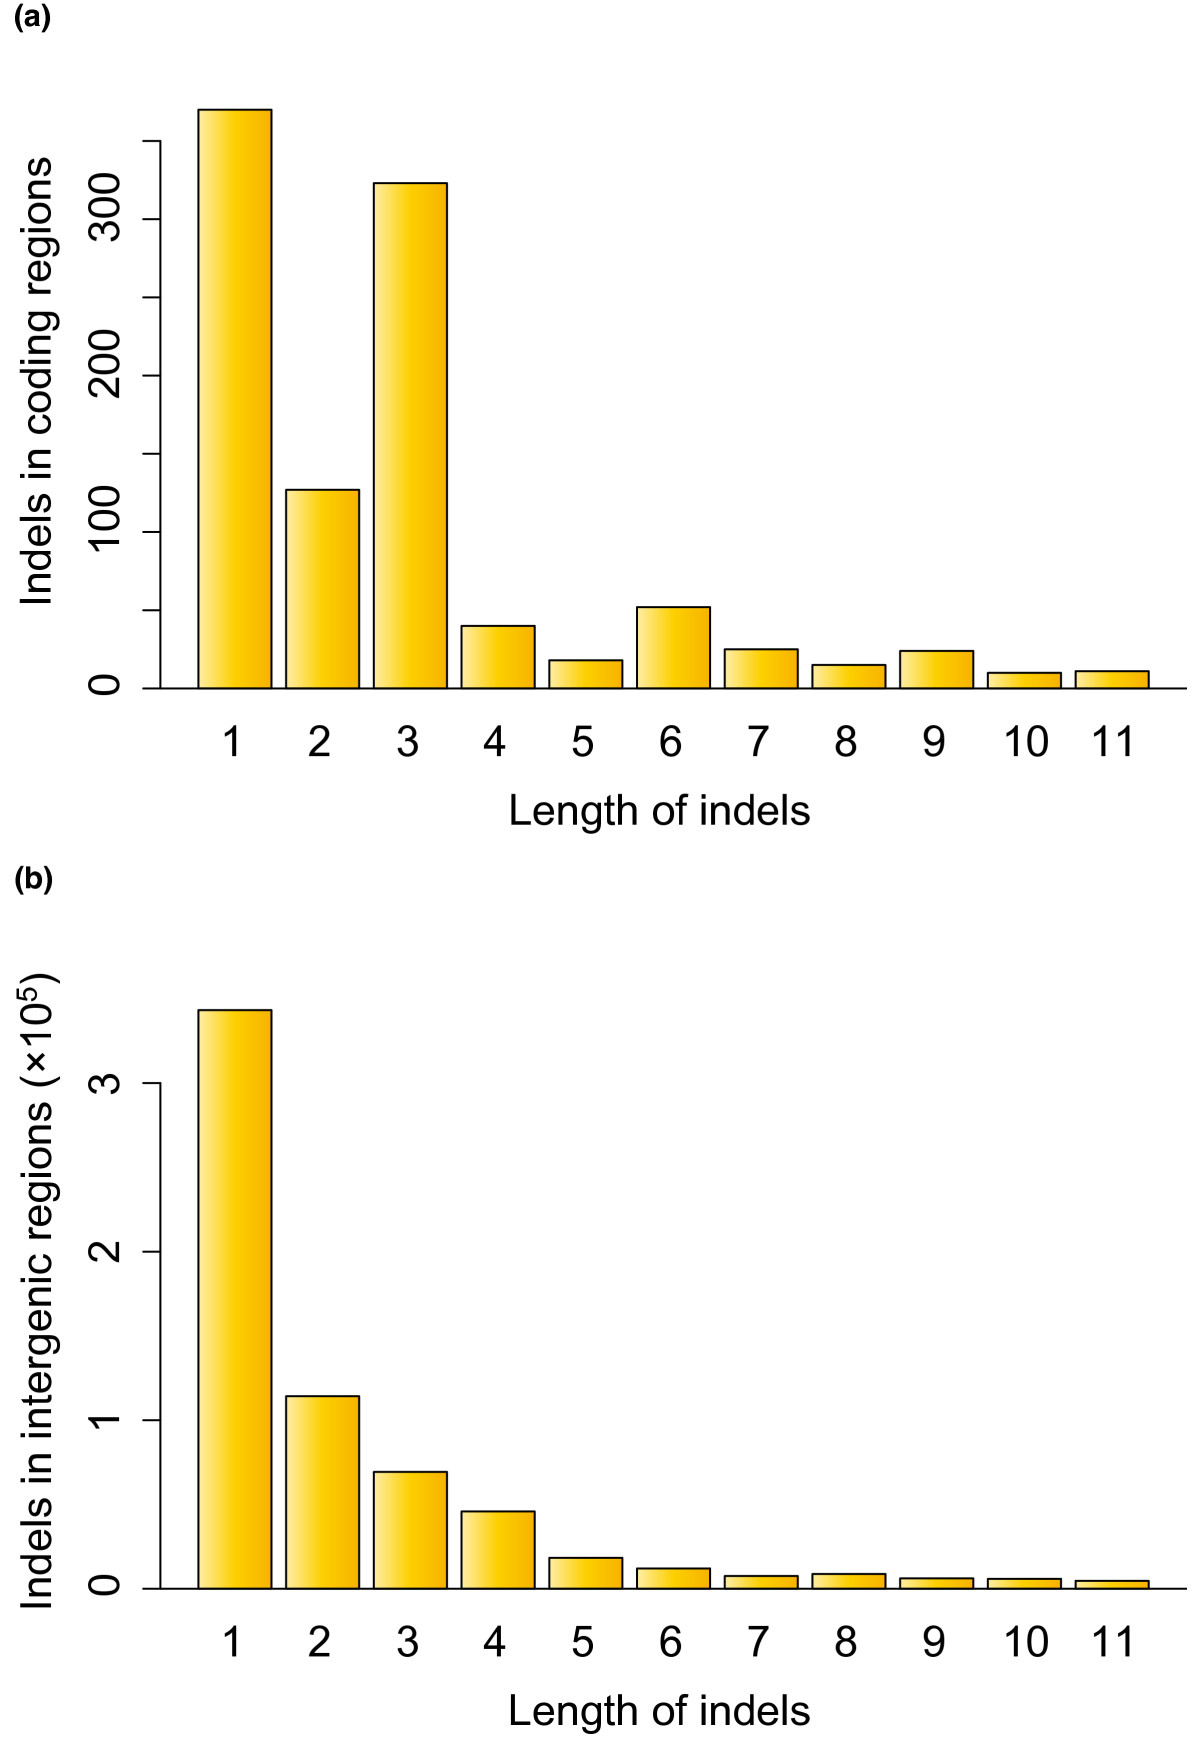 https://static-content.springer.com/image/art%3A10.1186%2Fgb-2012-13-7-r58/MediaObjects/13059_2011_Article_2898_Fig3_HTML.jpg